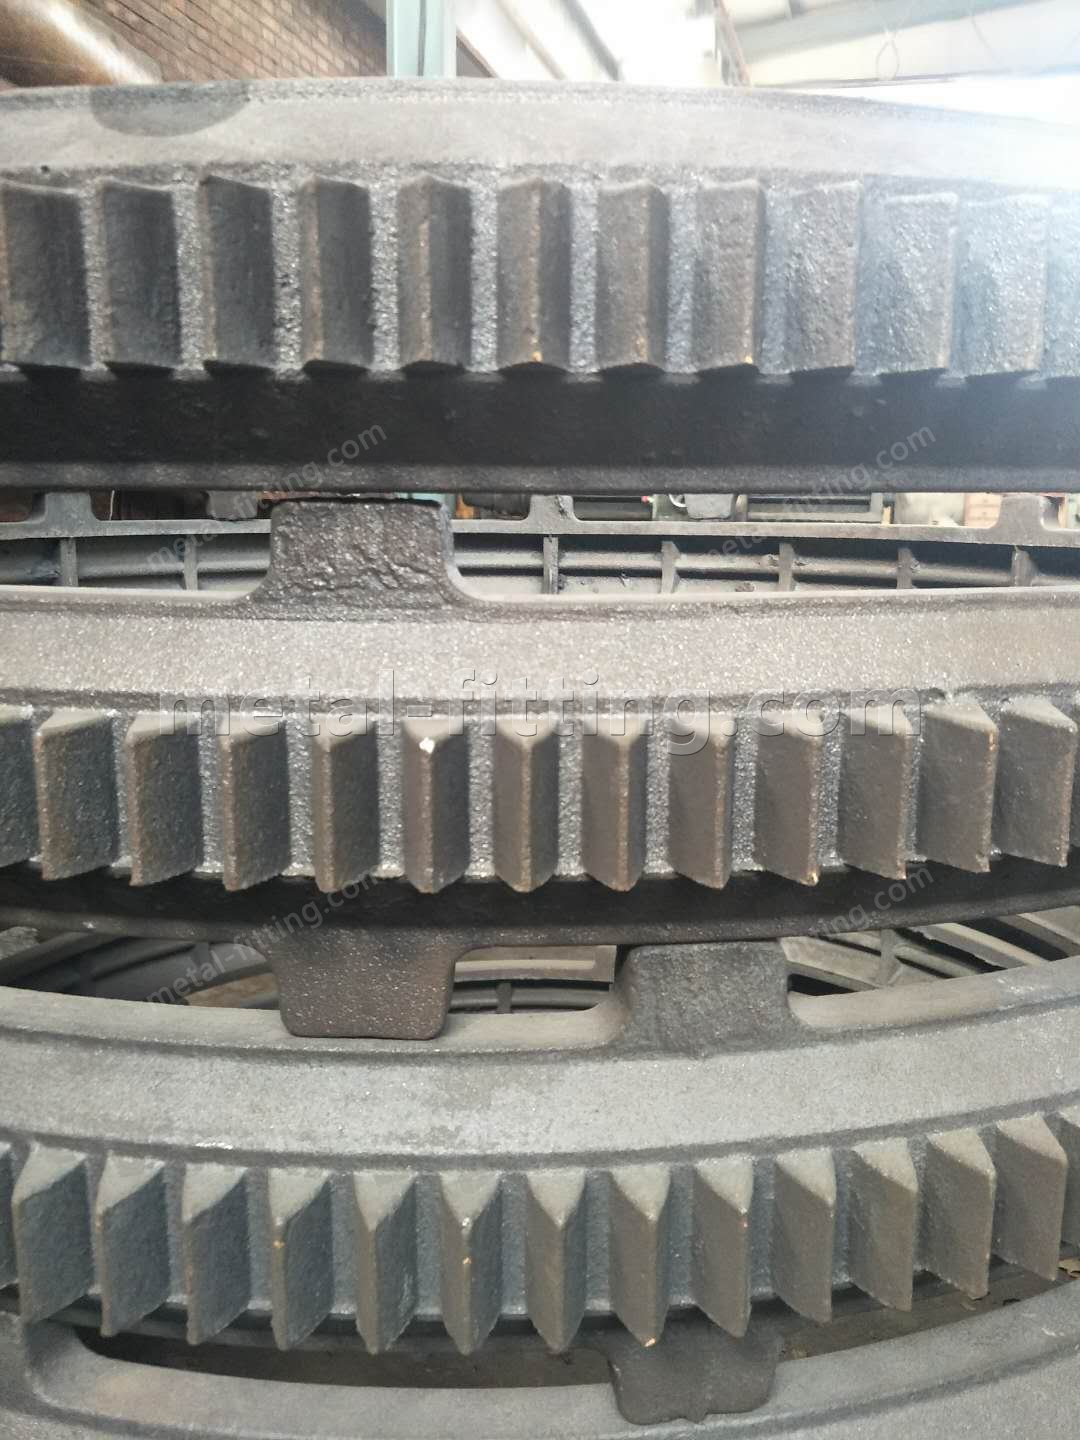 Casted iron Ring Gear and Pulley for concret Mixer-363228096312342471